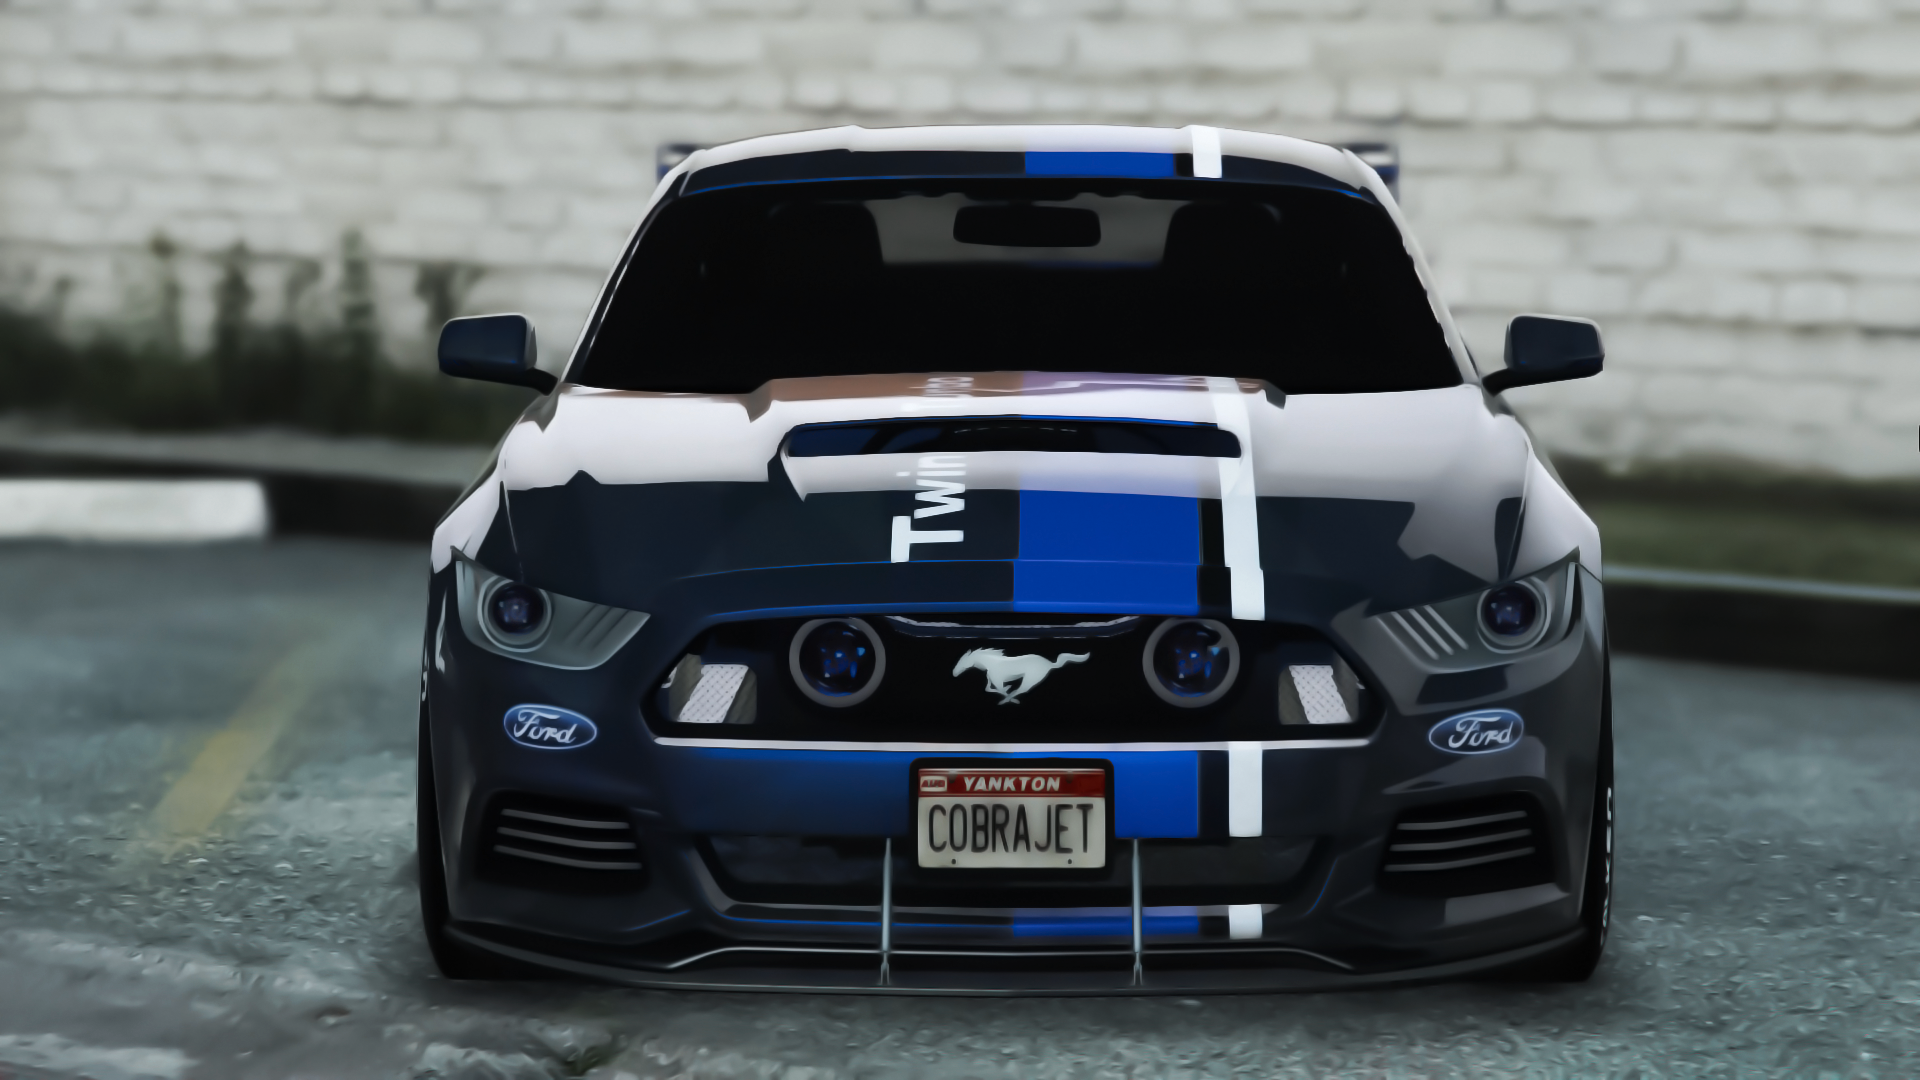 Cobra jet paintjob for mustang gt 2015 gta5 - Mustang cobra ...